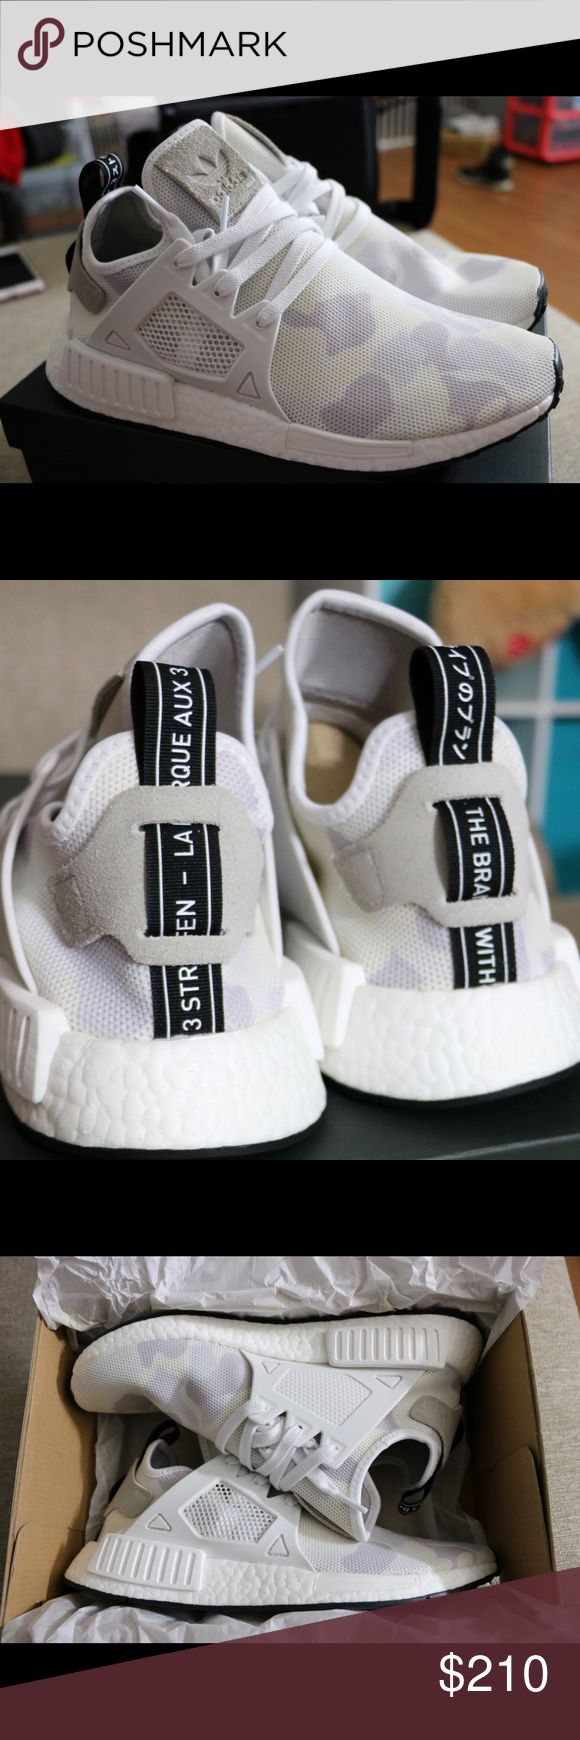 Adidas NMD XR1 Camo White Mens Brand New in Box w/ tags 100% Authentic Adidas NMD XR1 Camo White FREE Shipping on U.S. Orders Size 9 ONLY for Mens Adidas Shoes Athletic Shoes